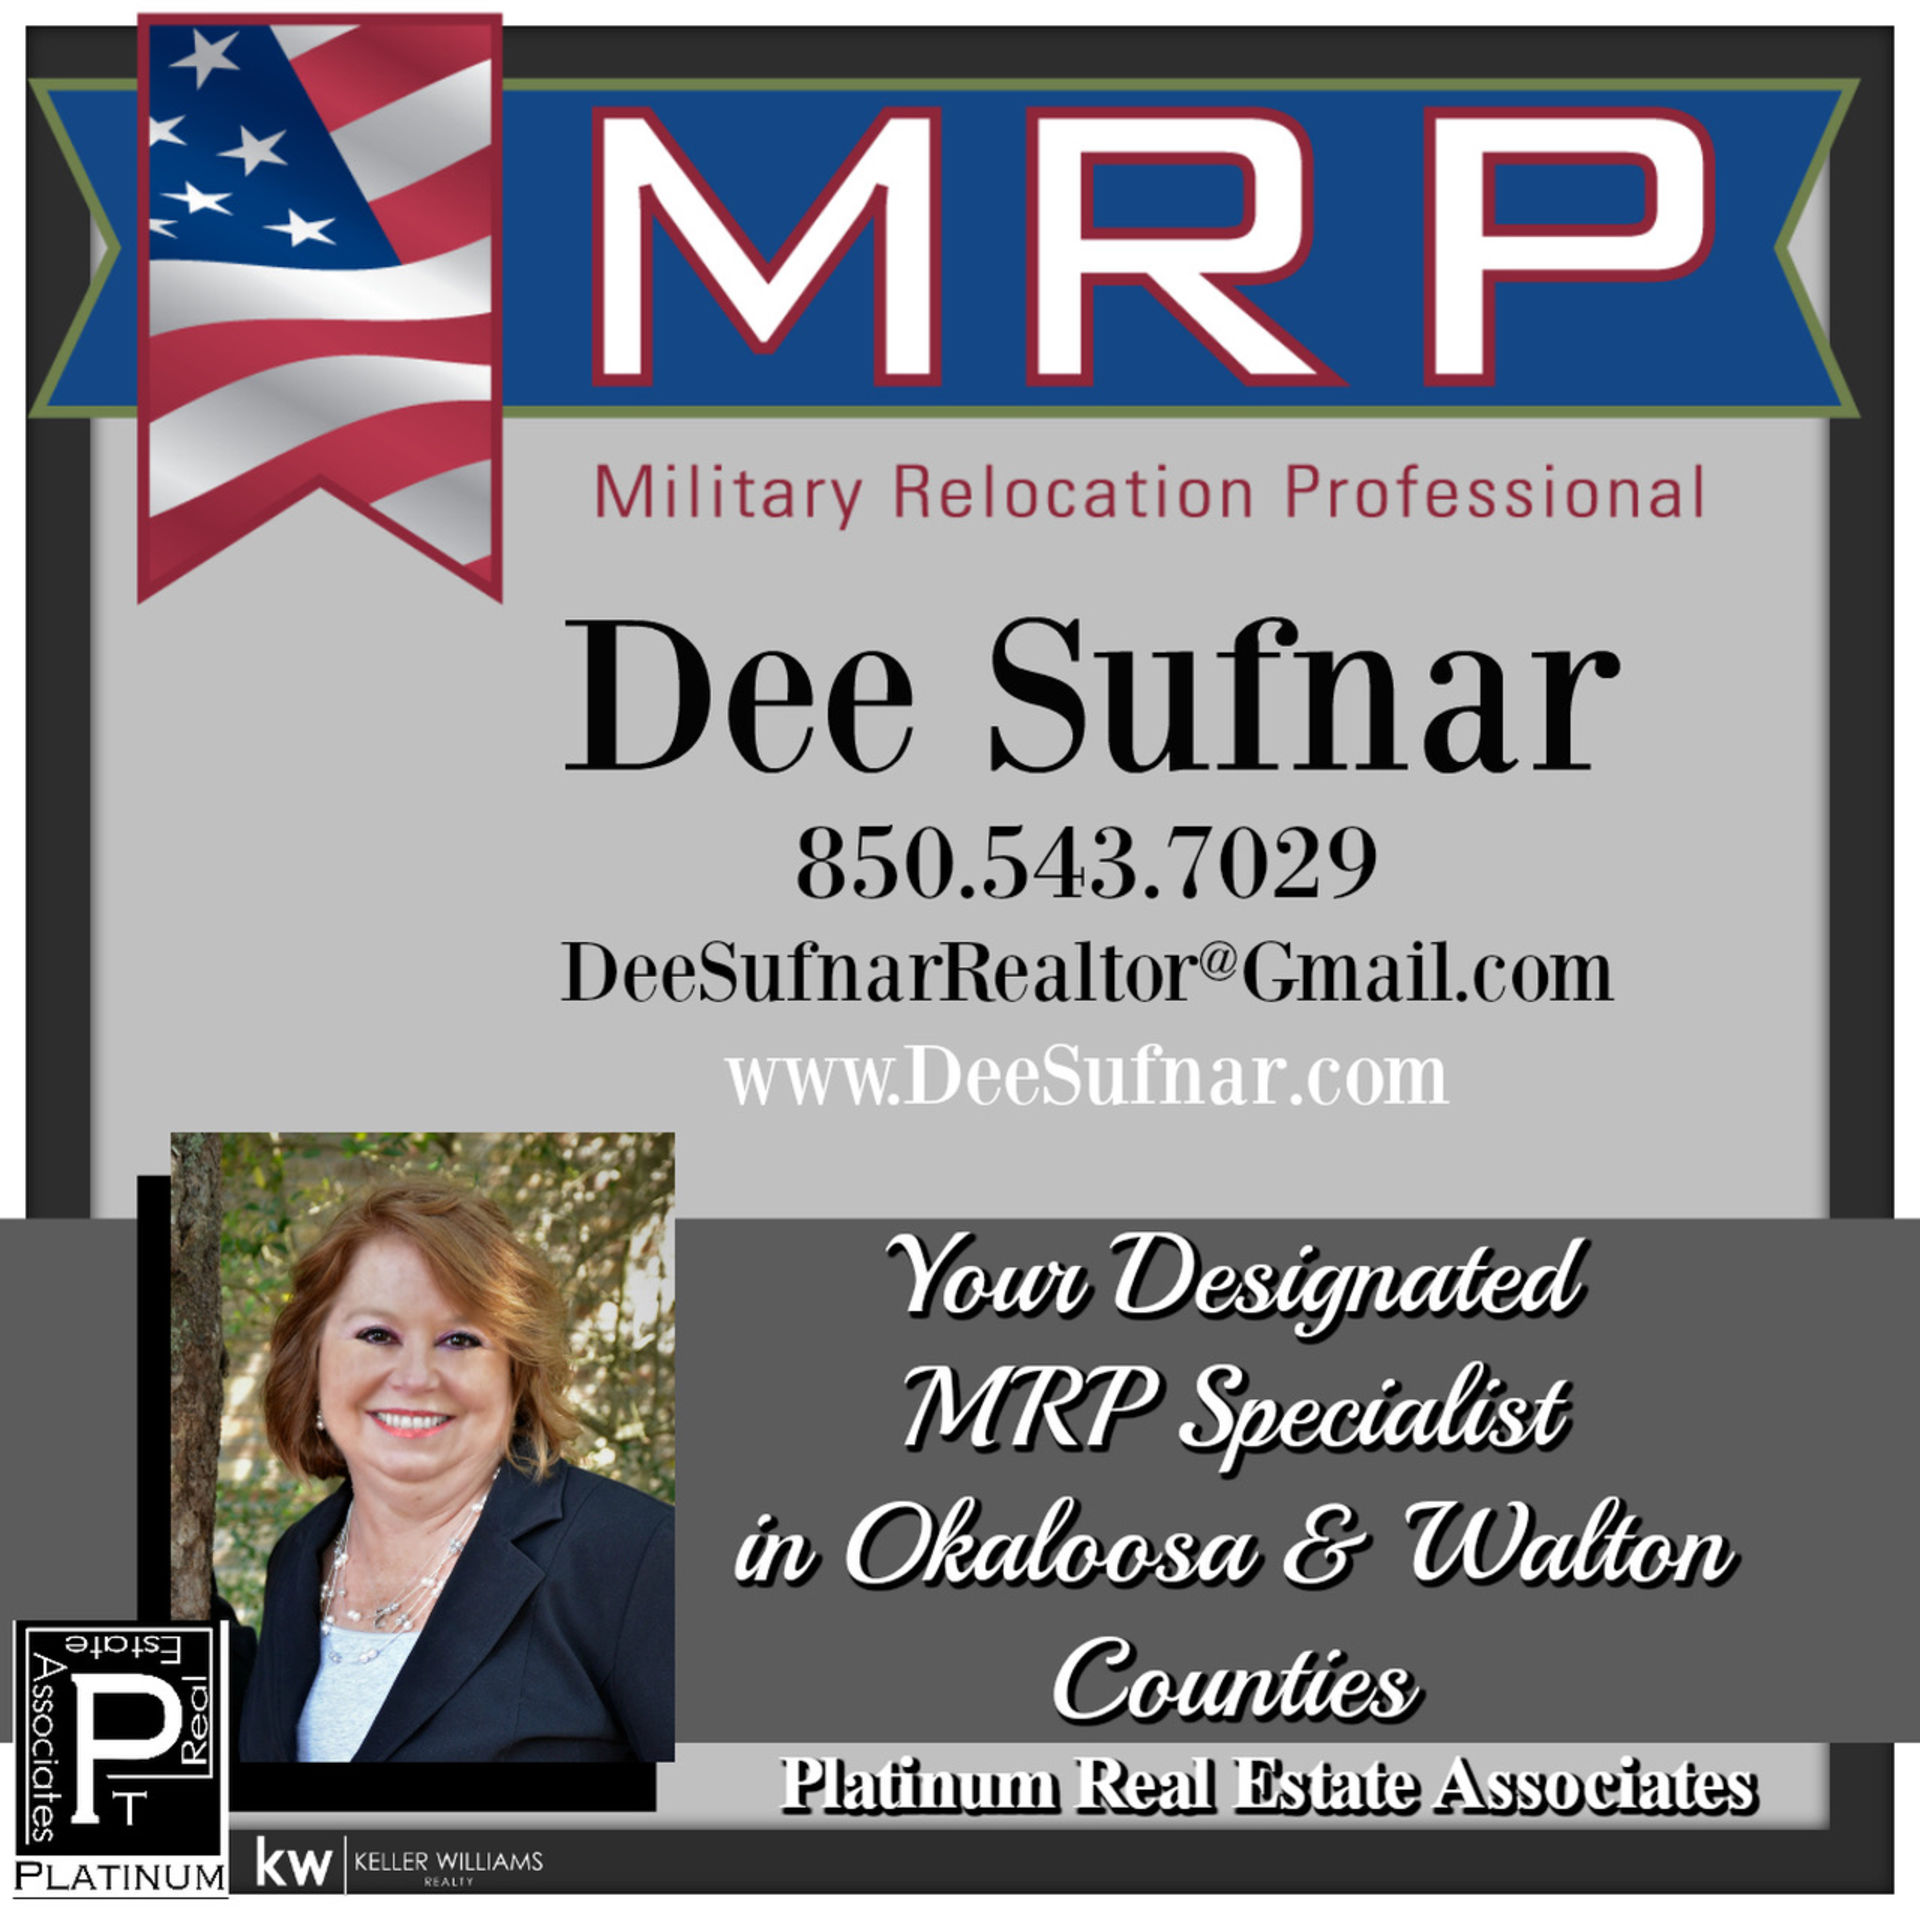 Deneen M. Sufnar Earns NAR's Military Relocation Professional Certification